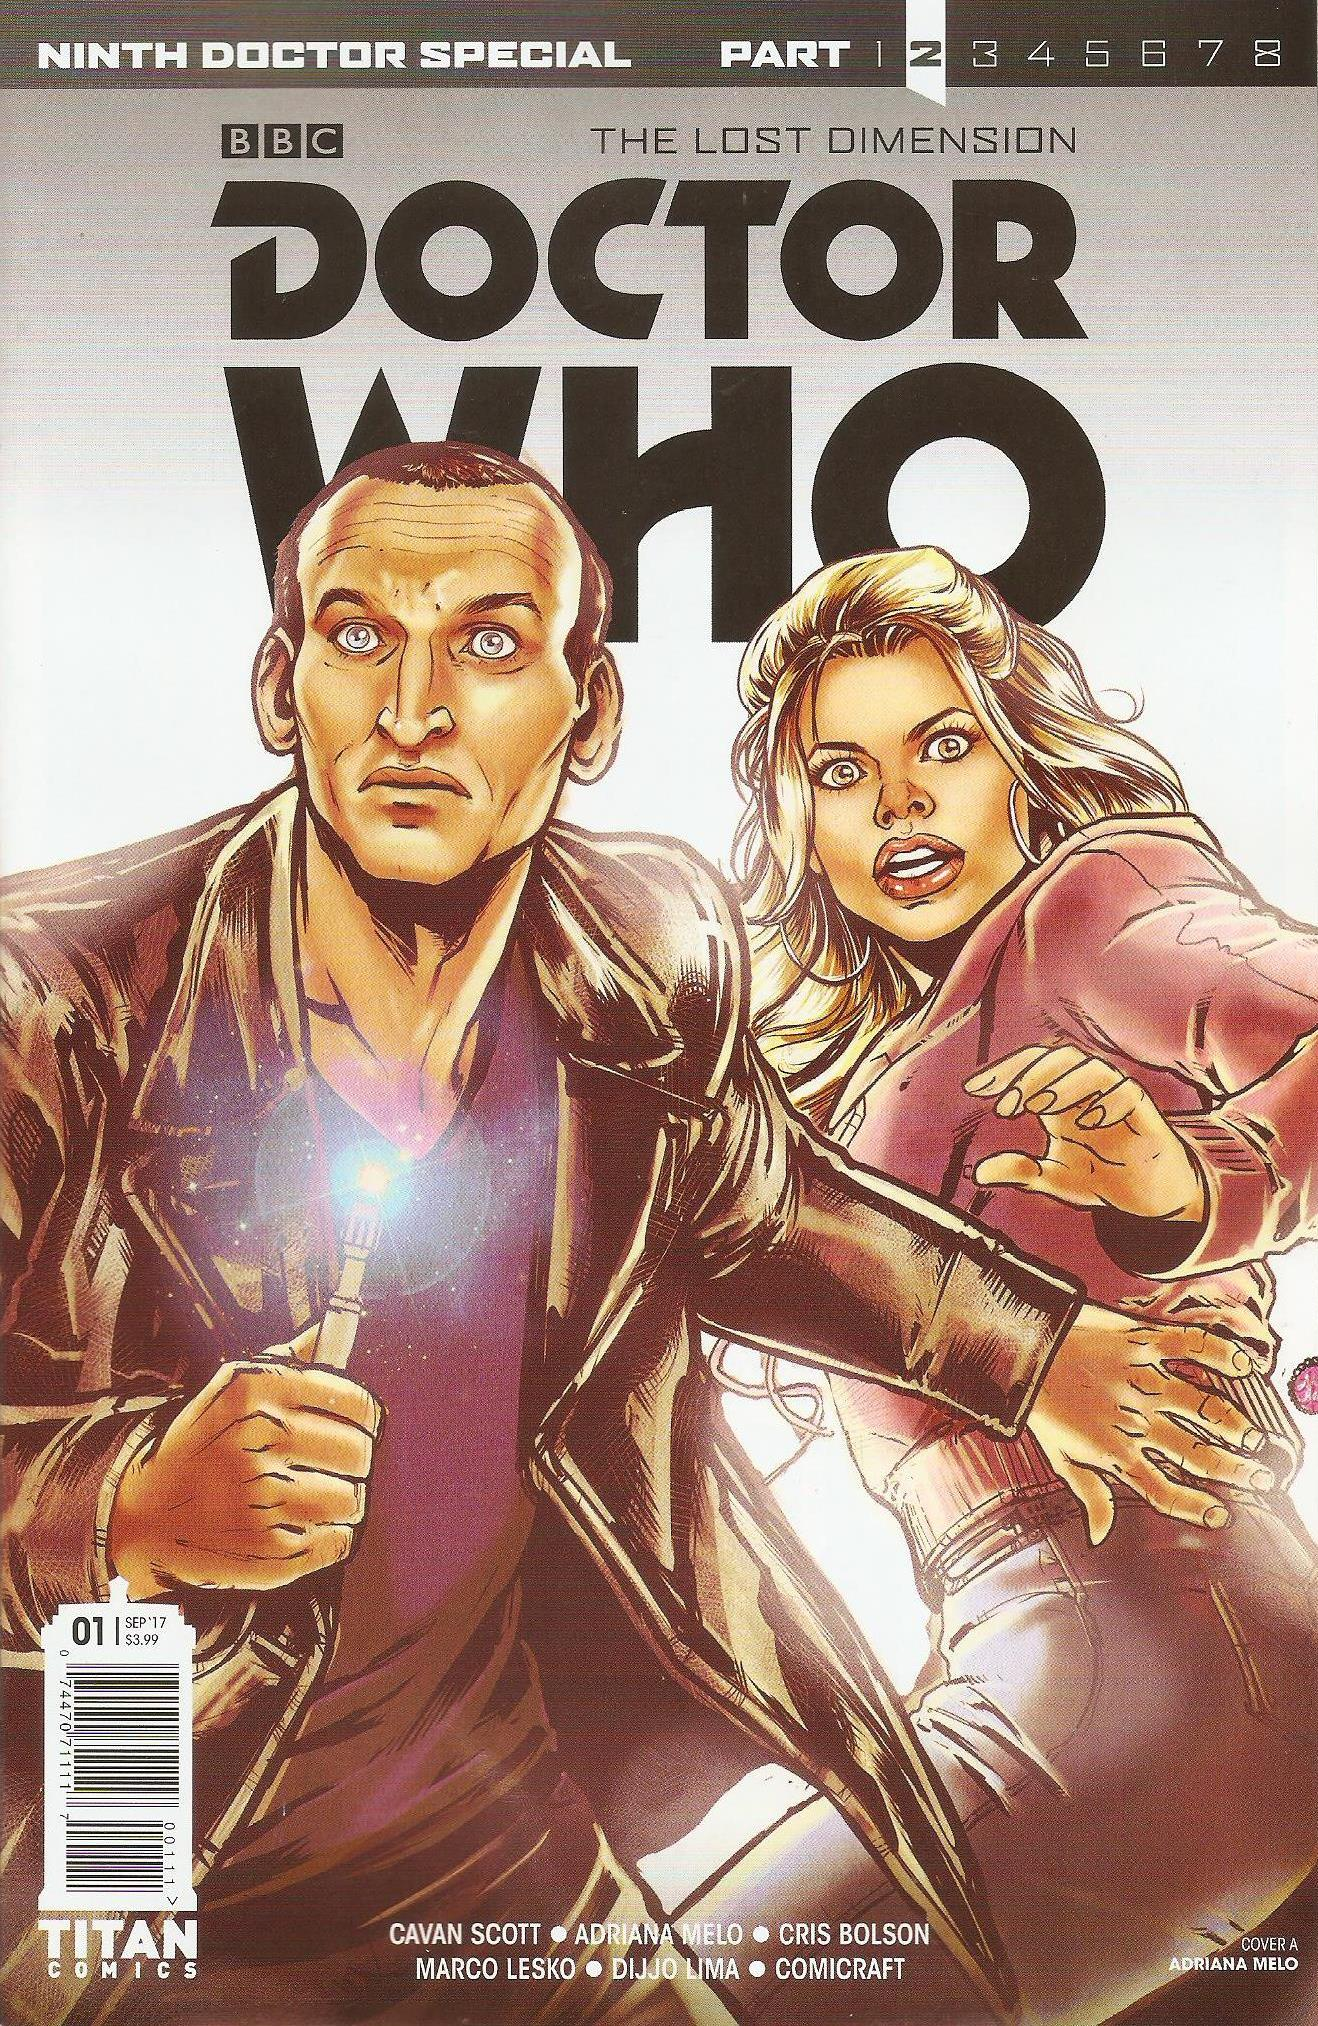 Ninth doctor special 1a